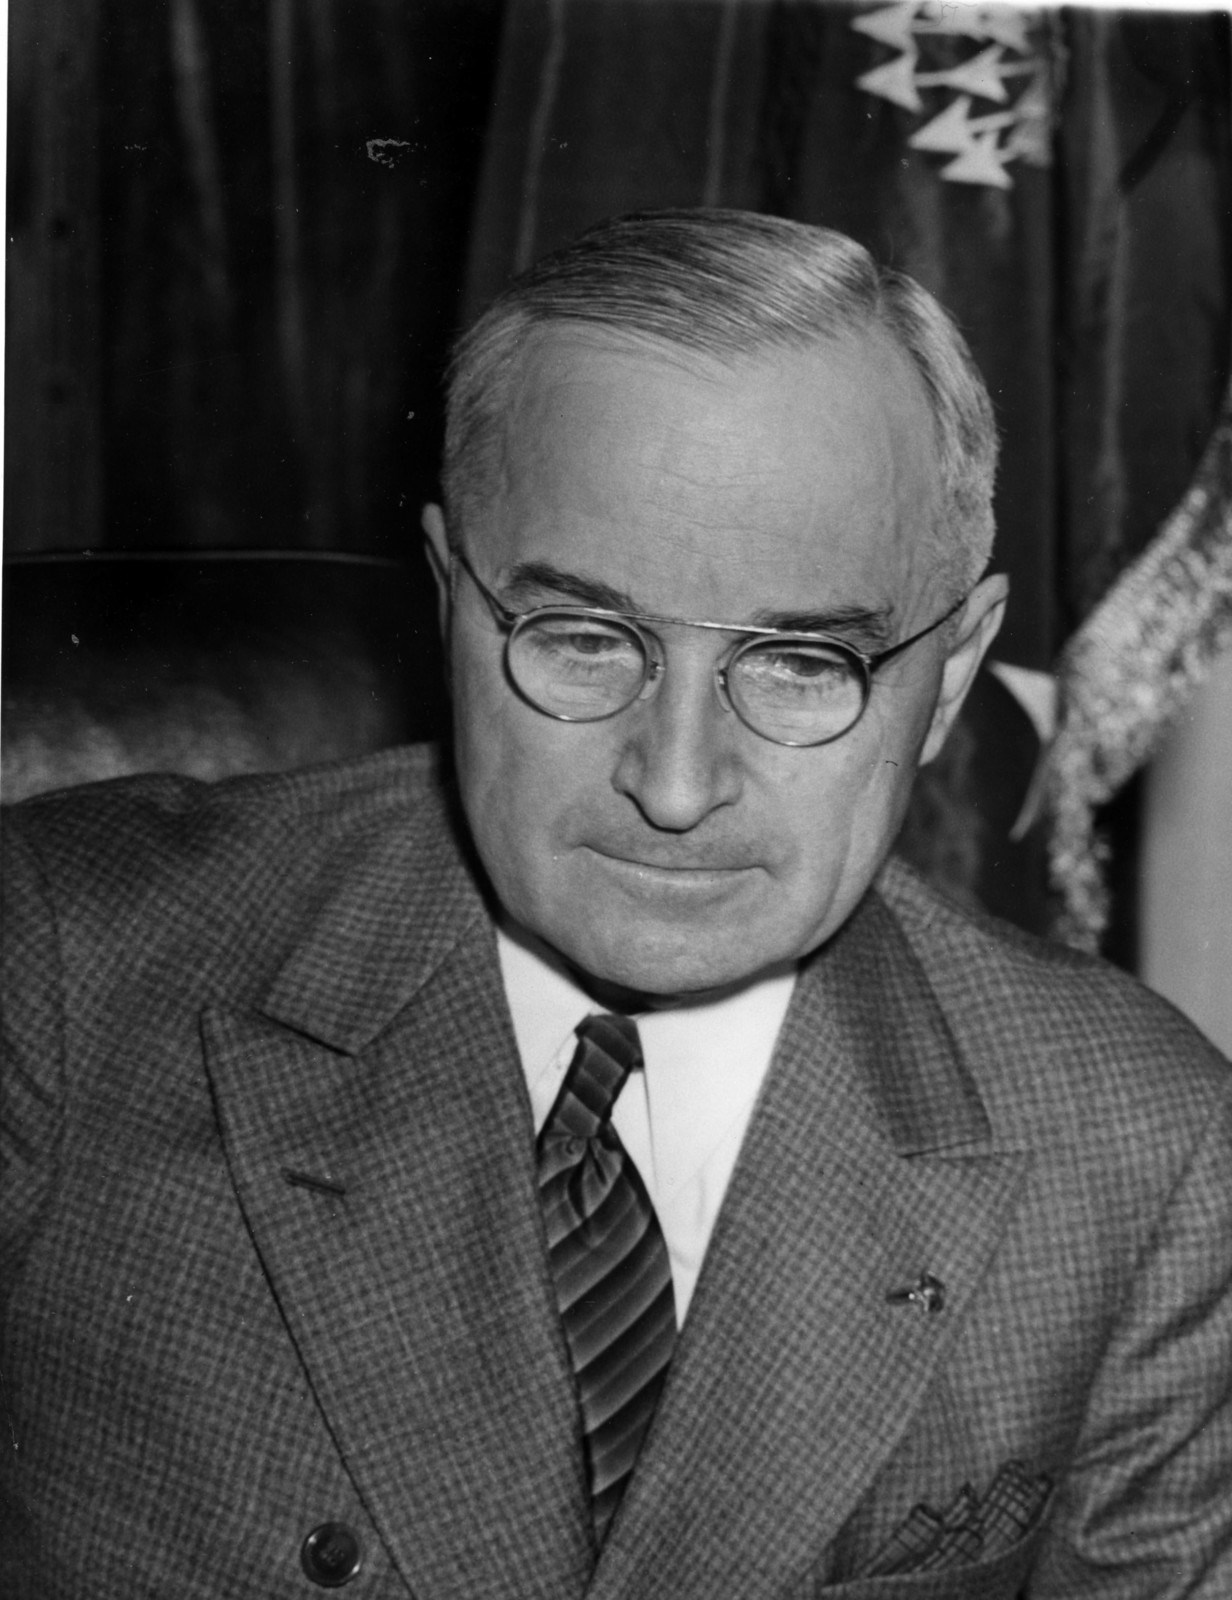 Head and Shoulders Serious View of President Harry S. Truman at His Desk